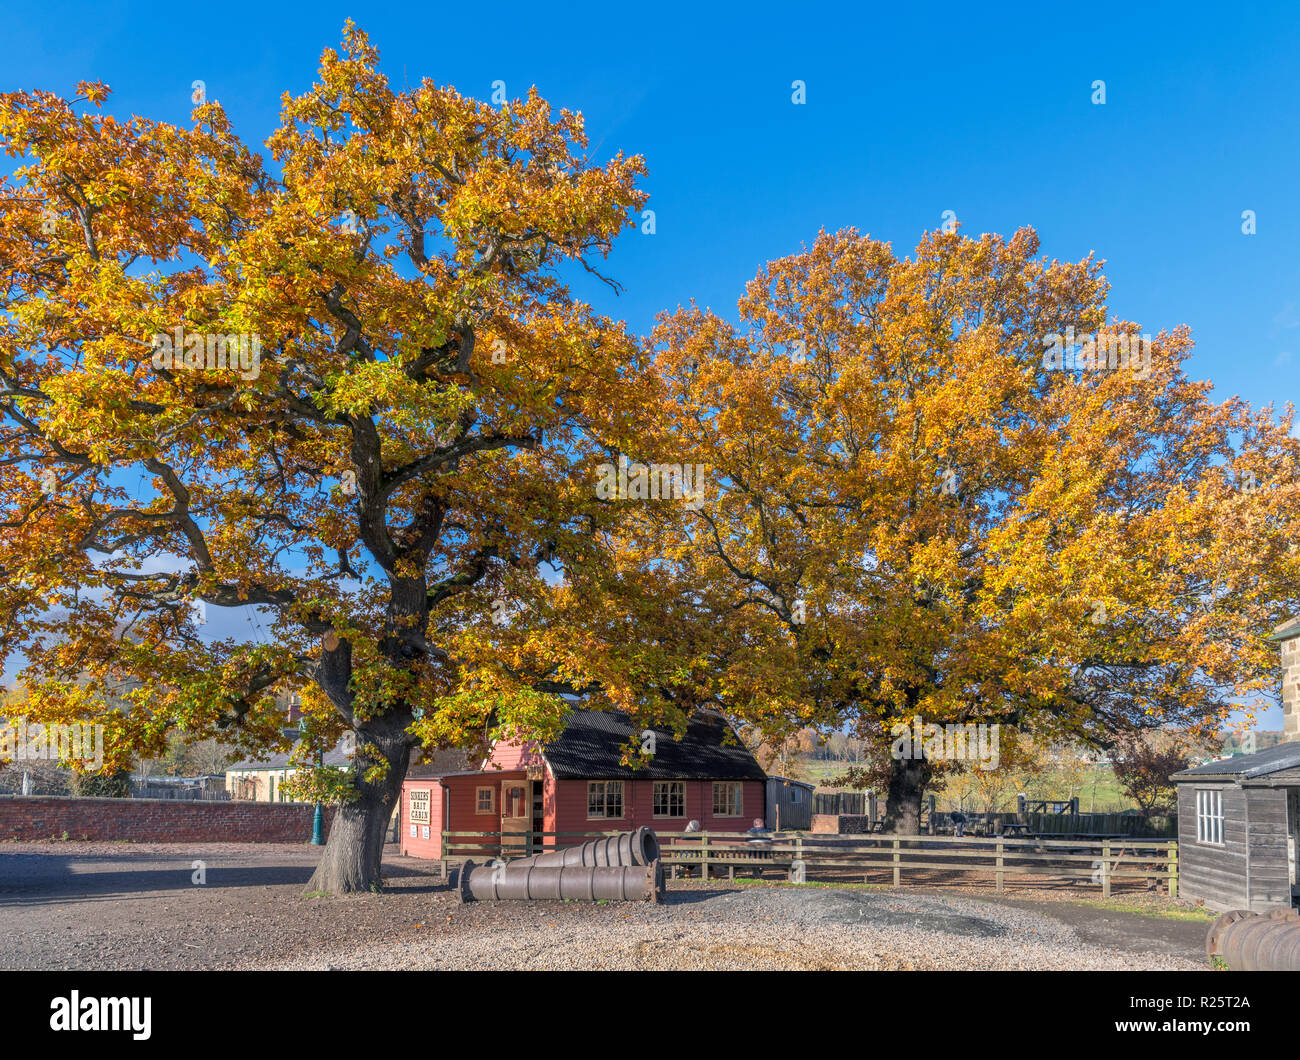 Autumn colours in the Pit Village and Colliery, Beamish Open Air Museum, Beamish, County Durham, England UK - Stock Image